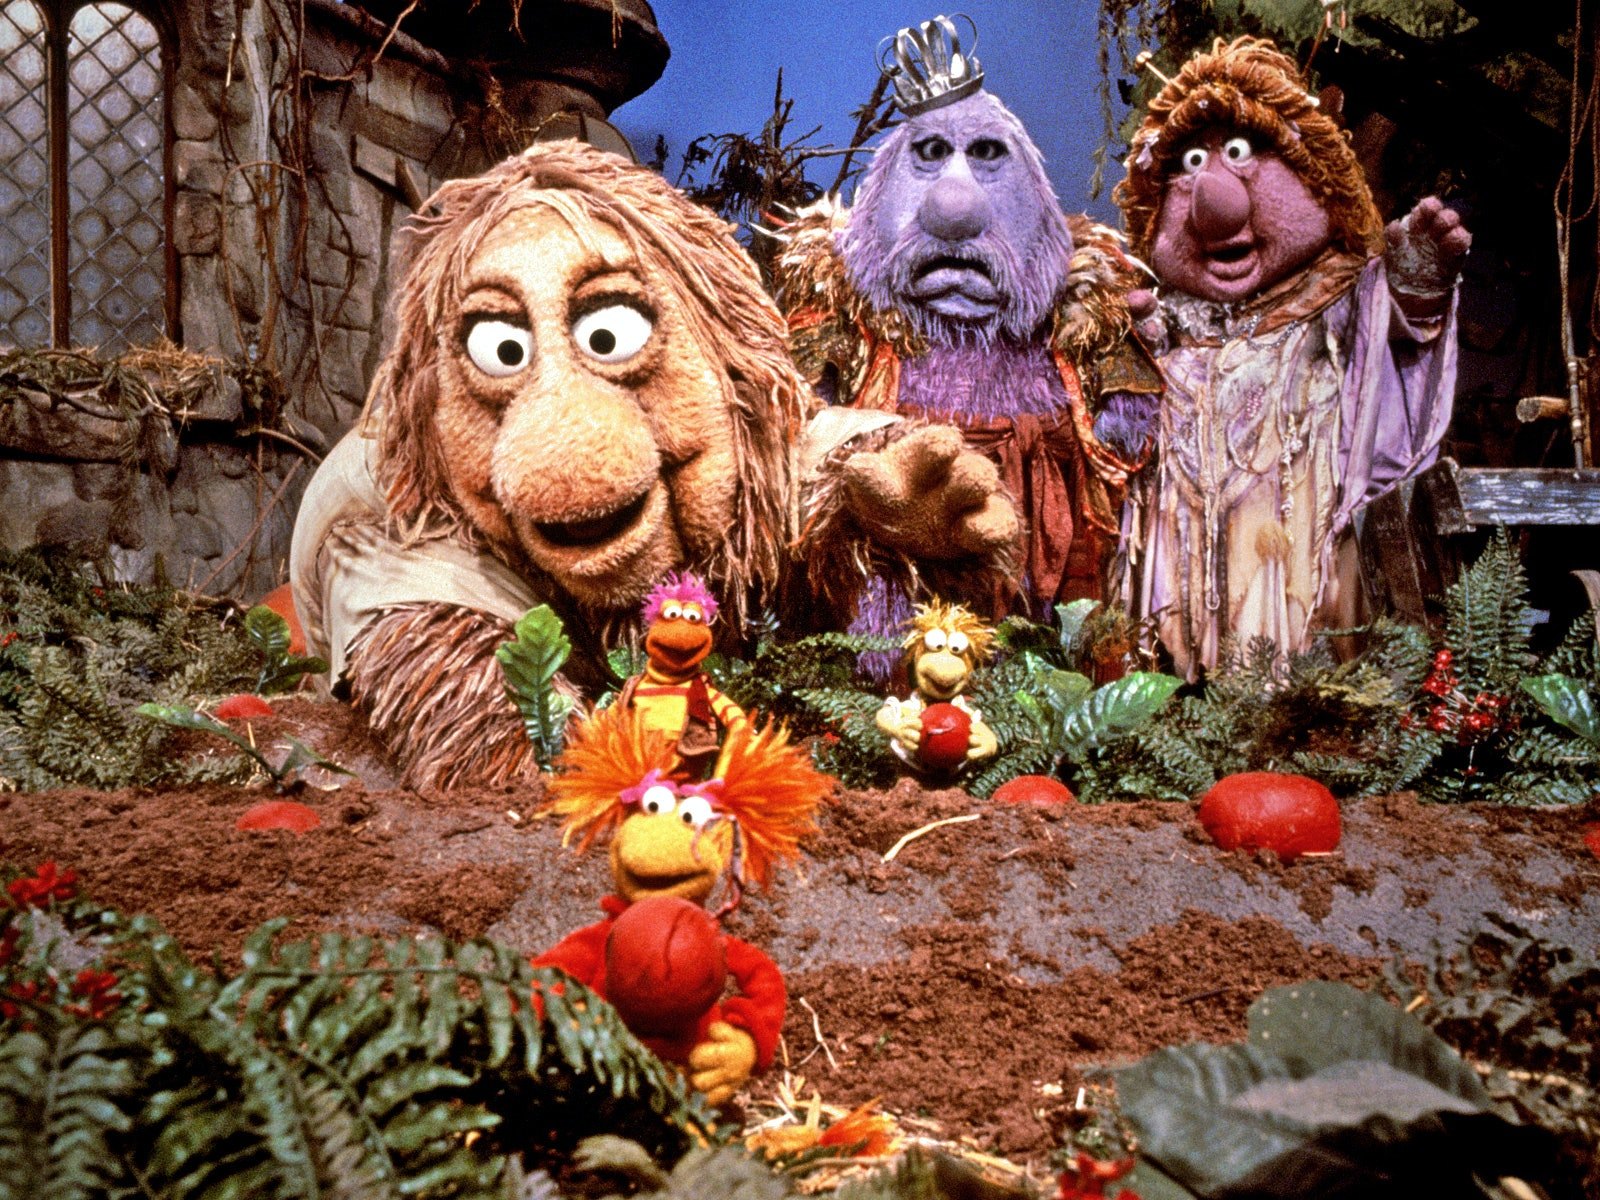 Jim Henson's world of Fraggle Rock set to return as remastered version